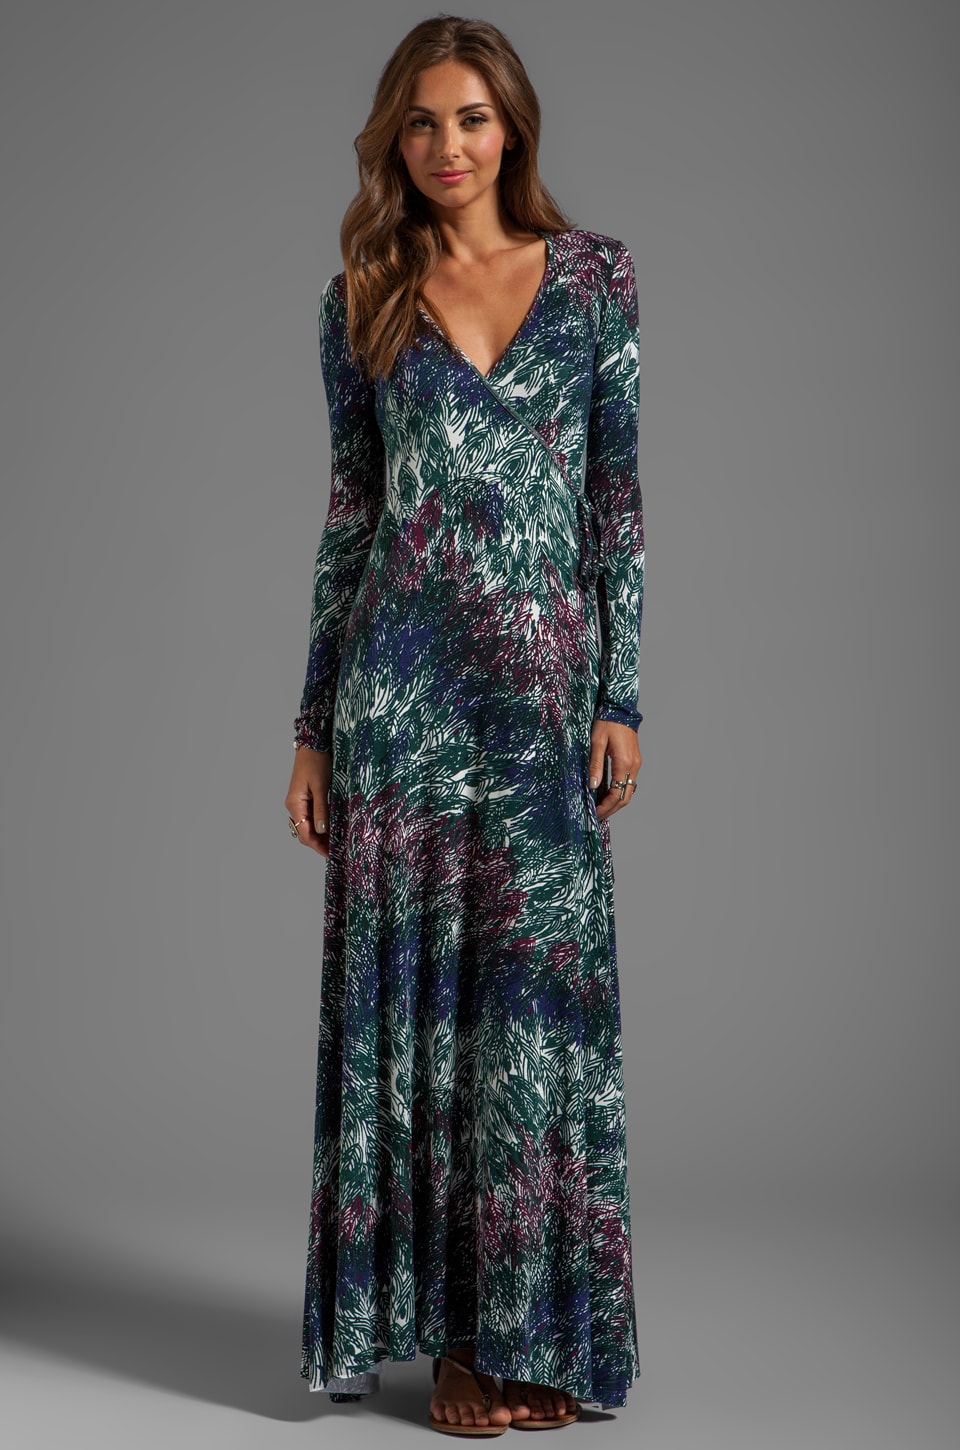 Rachel Pally Long Wrap Dress in Anemone